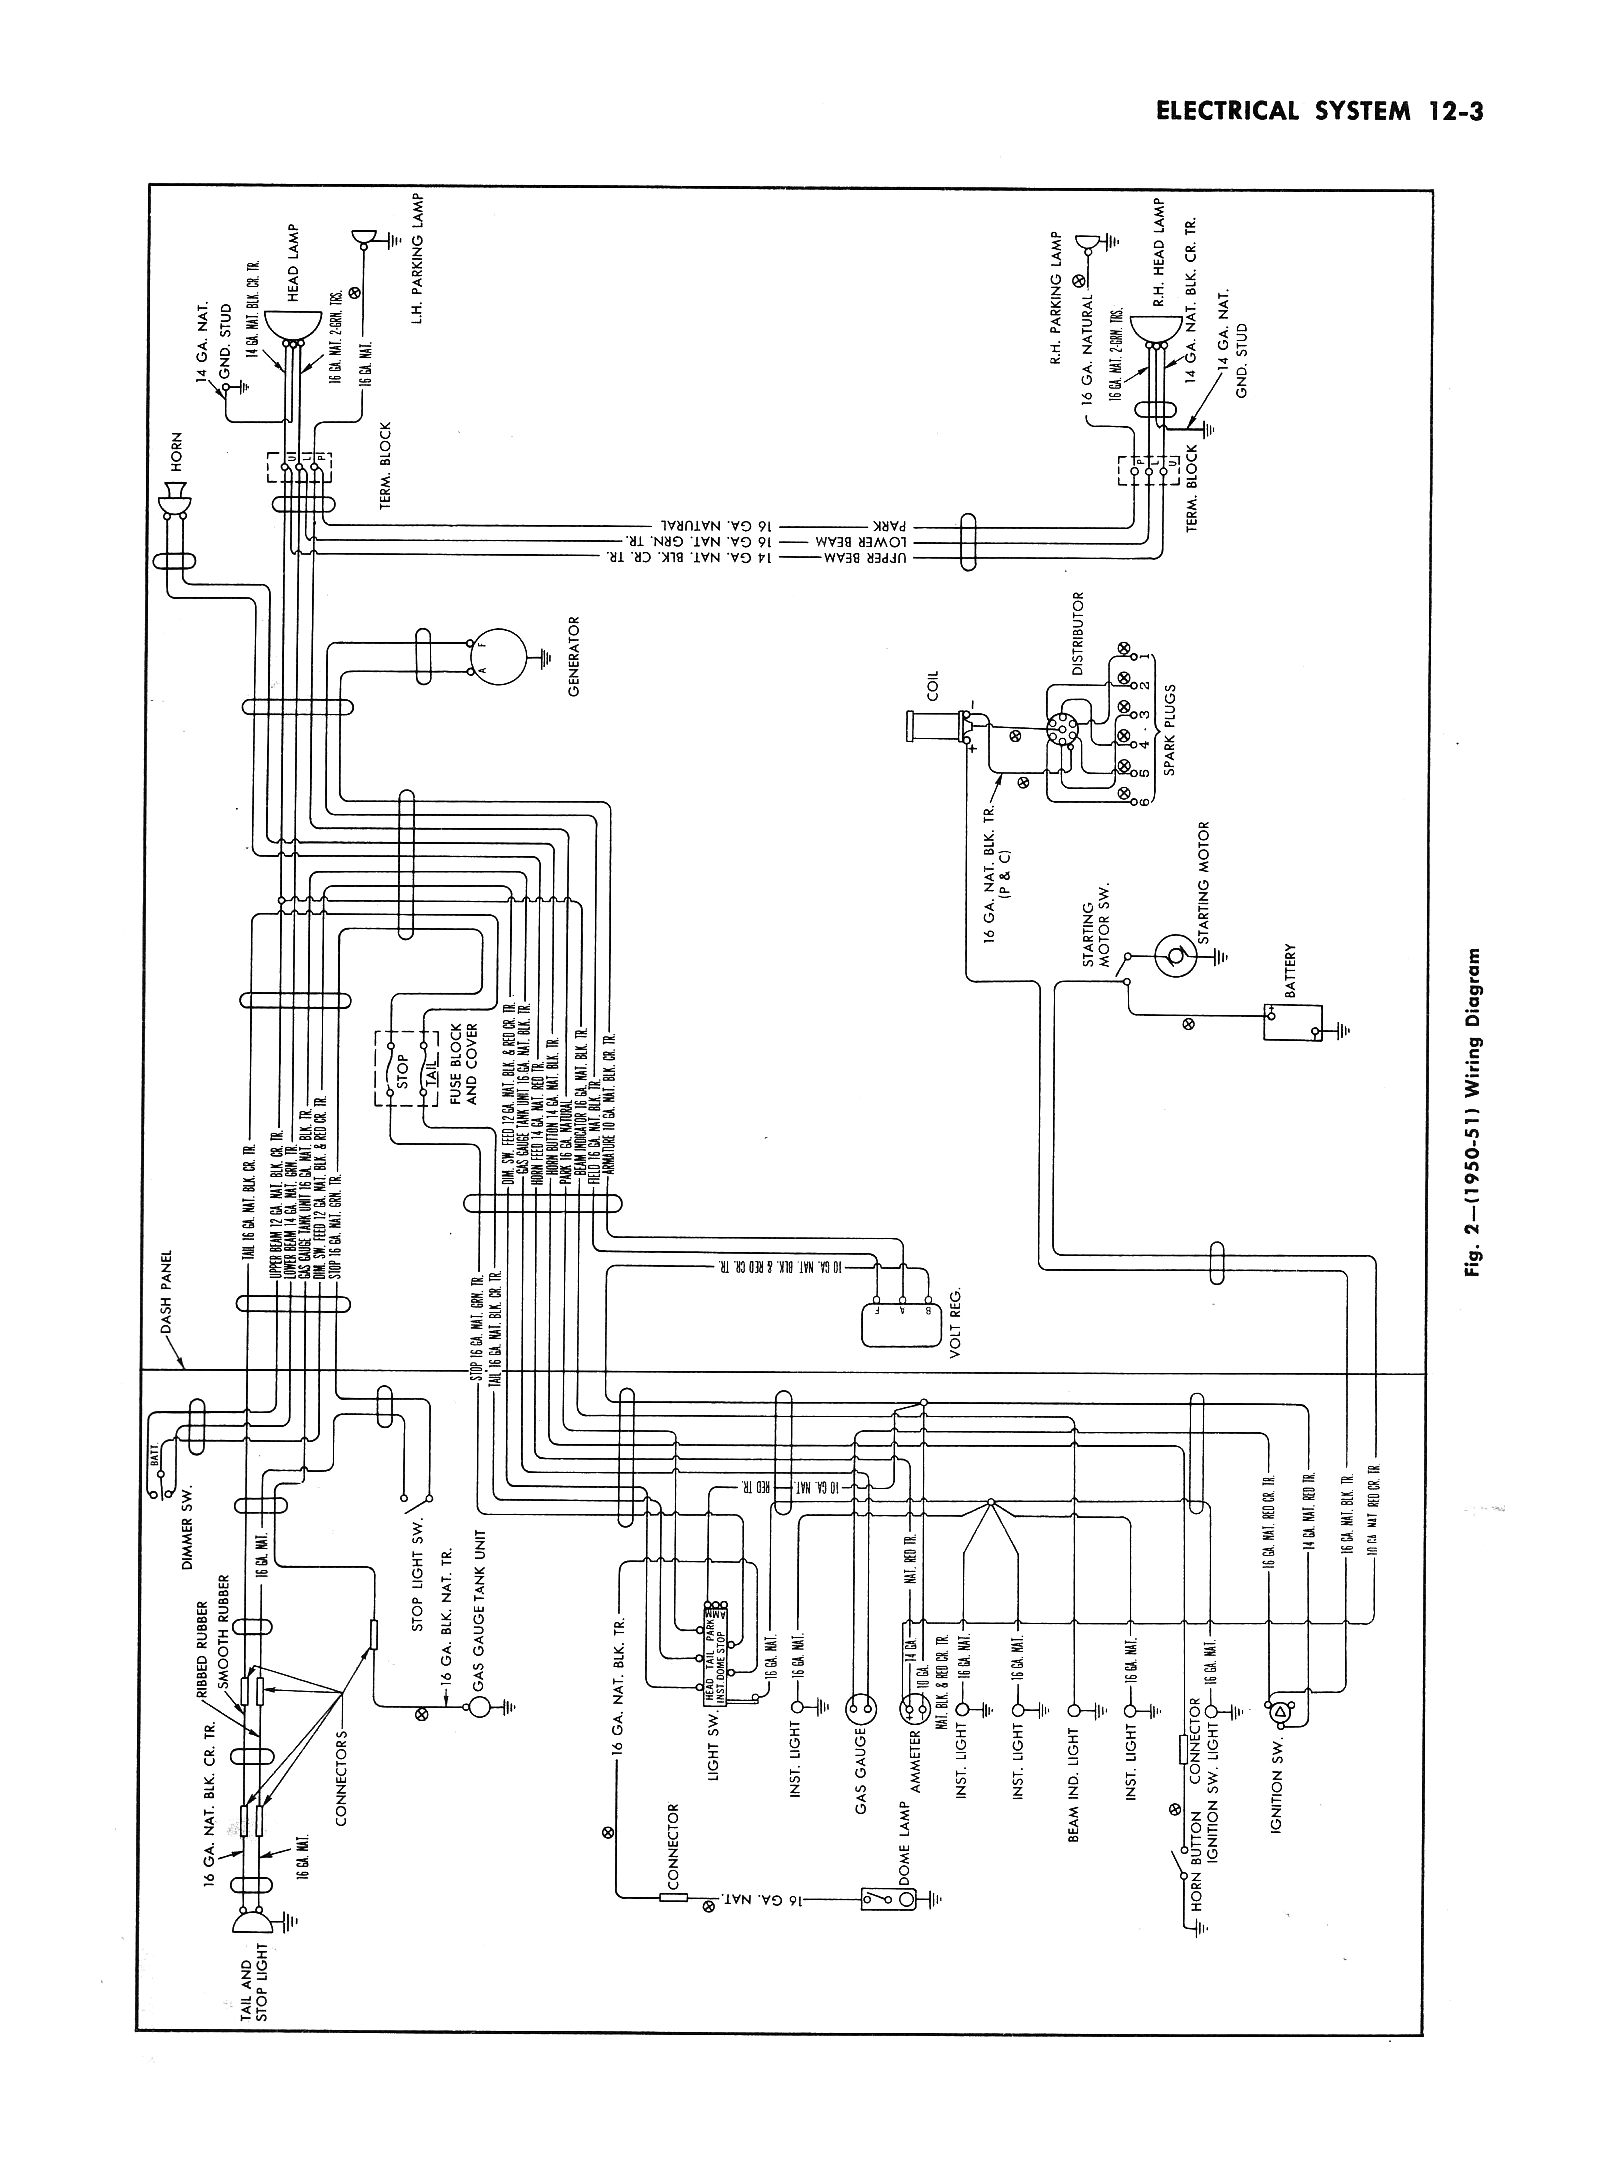 1951 ford turn signal wiring diagram free download 7mi awosurk de \u2022 55 Chevy Wiring Diagram chevy ke light switch wiring diagram wiring library rh mckortenoord nl